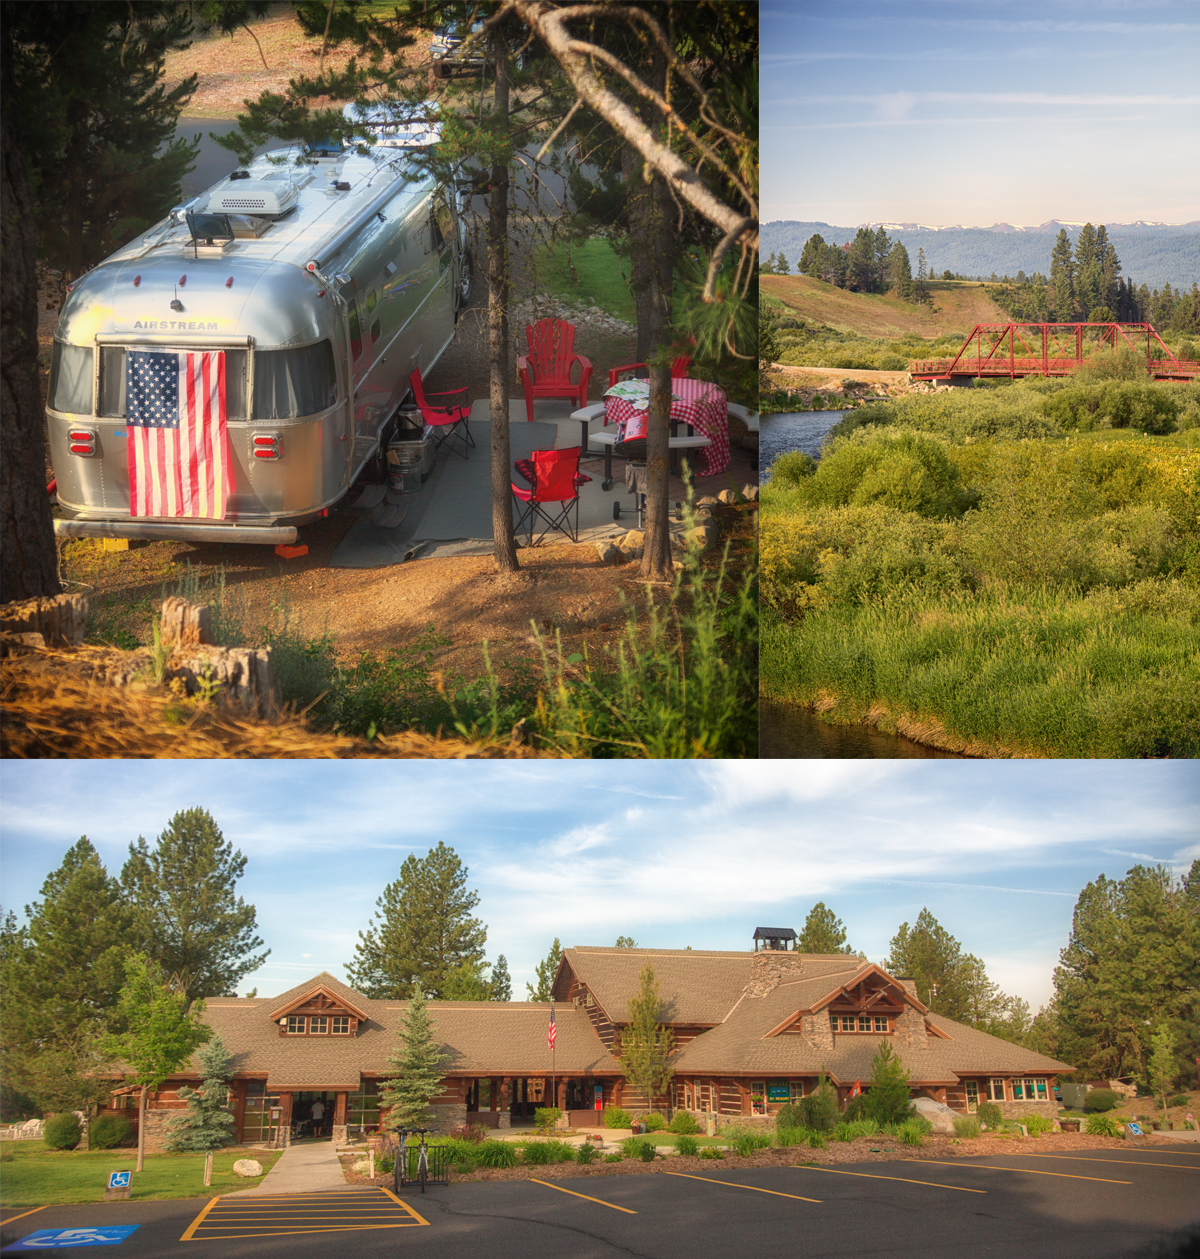 McCall RV Resort in beautiful McCall, Idaho via J5MM.com